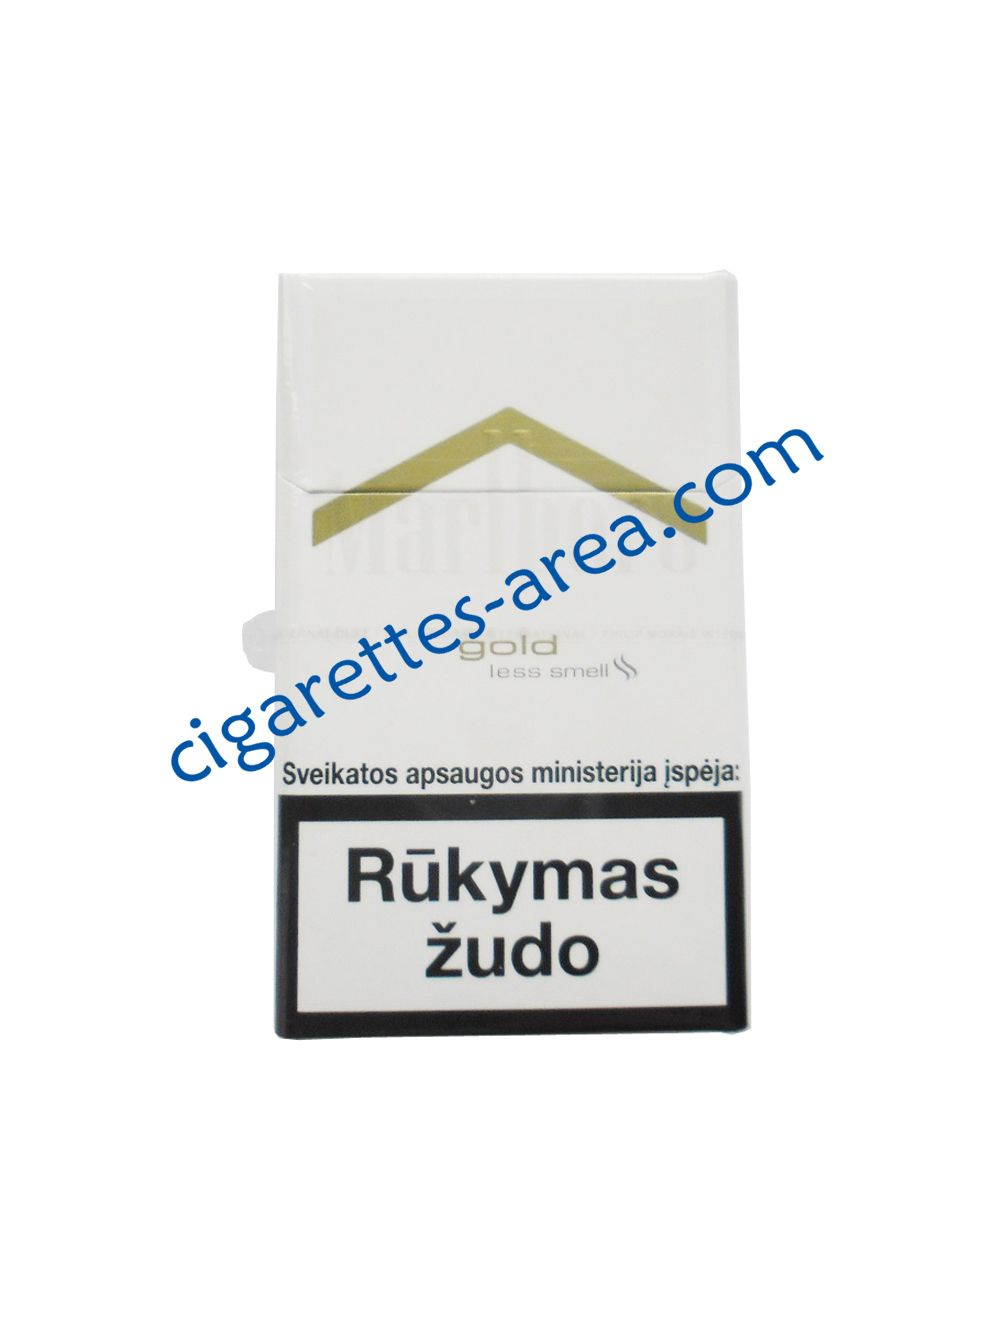 Where to buy cigarettes on the internet